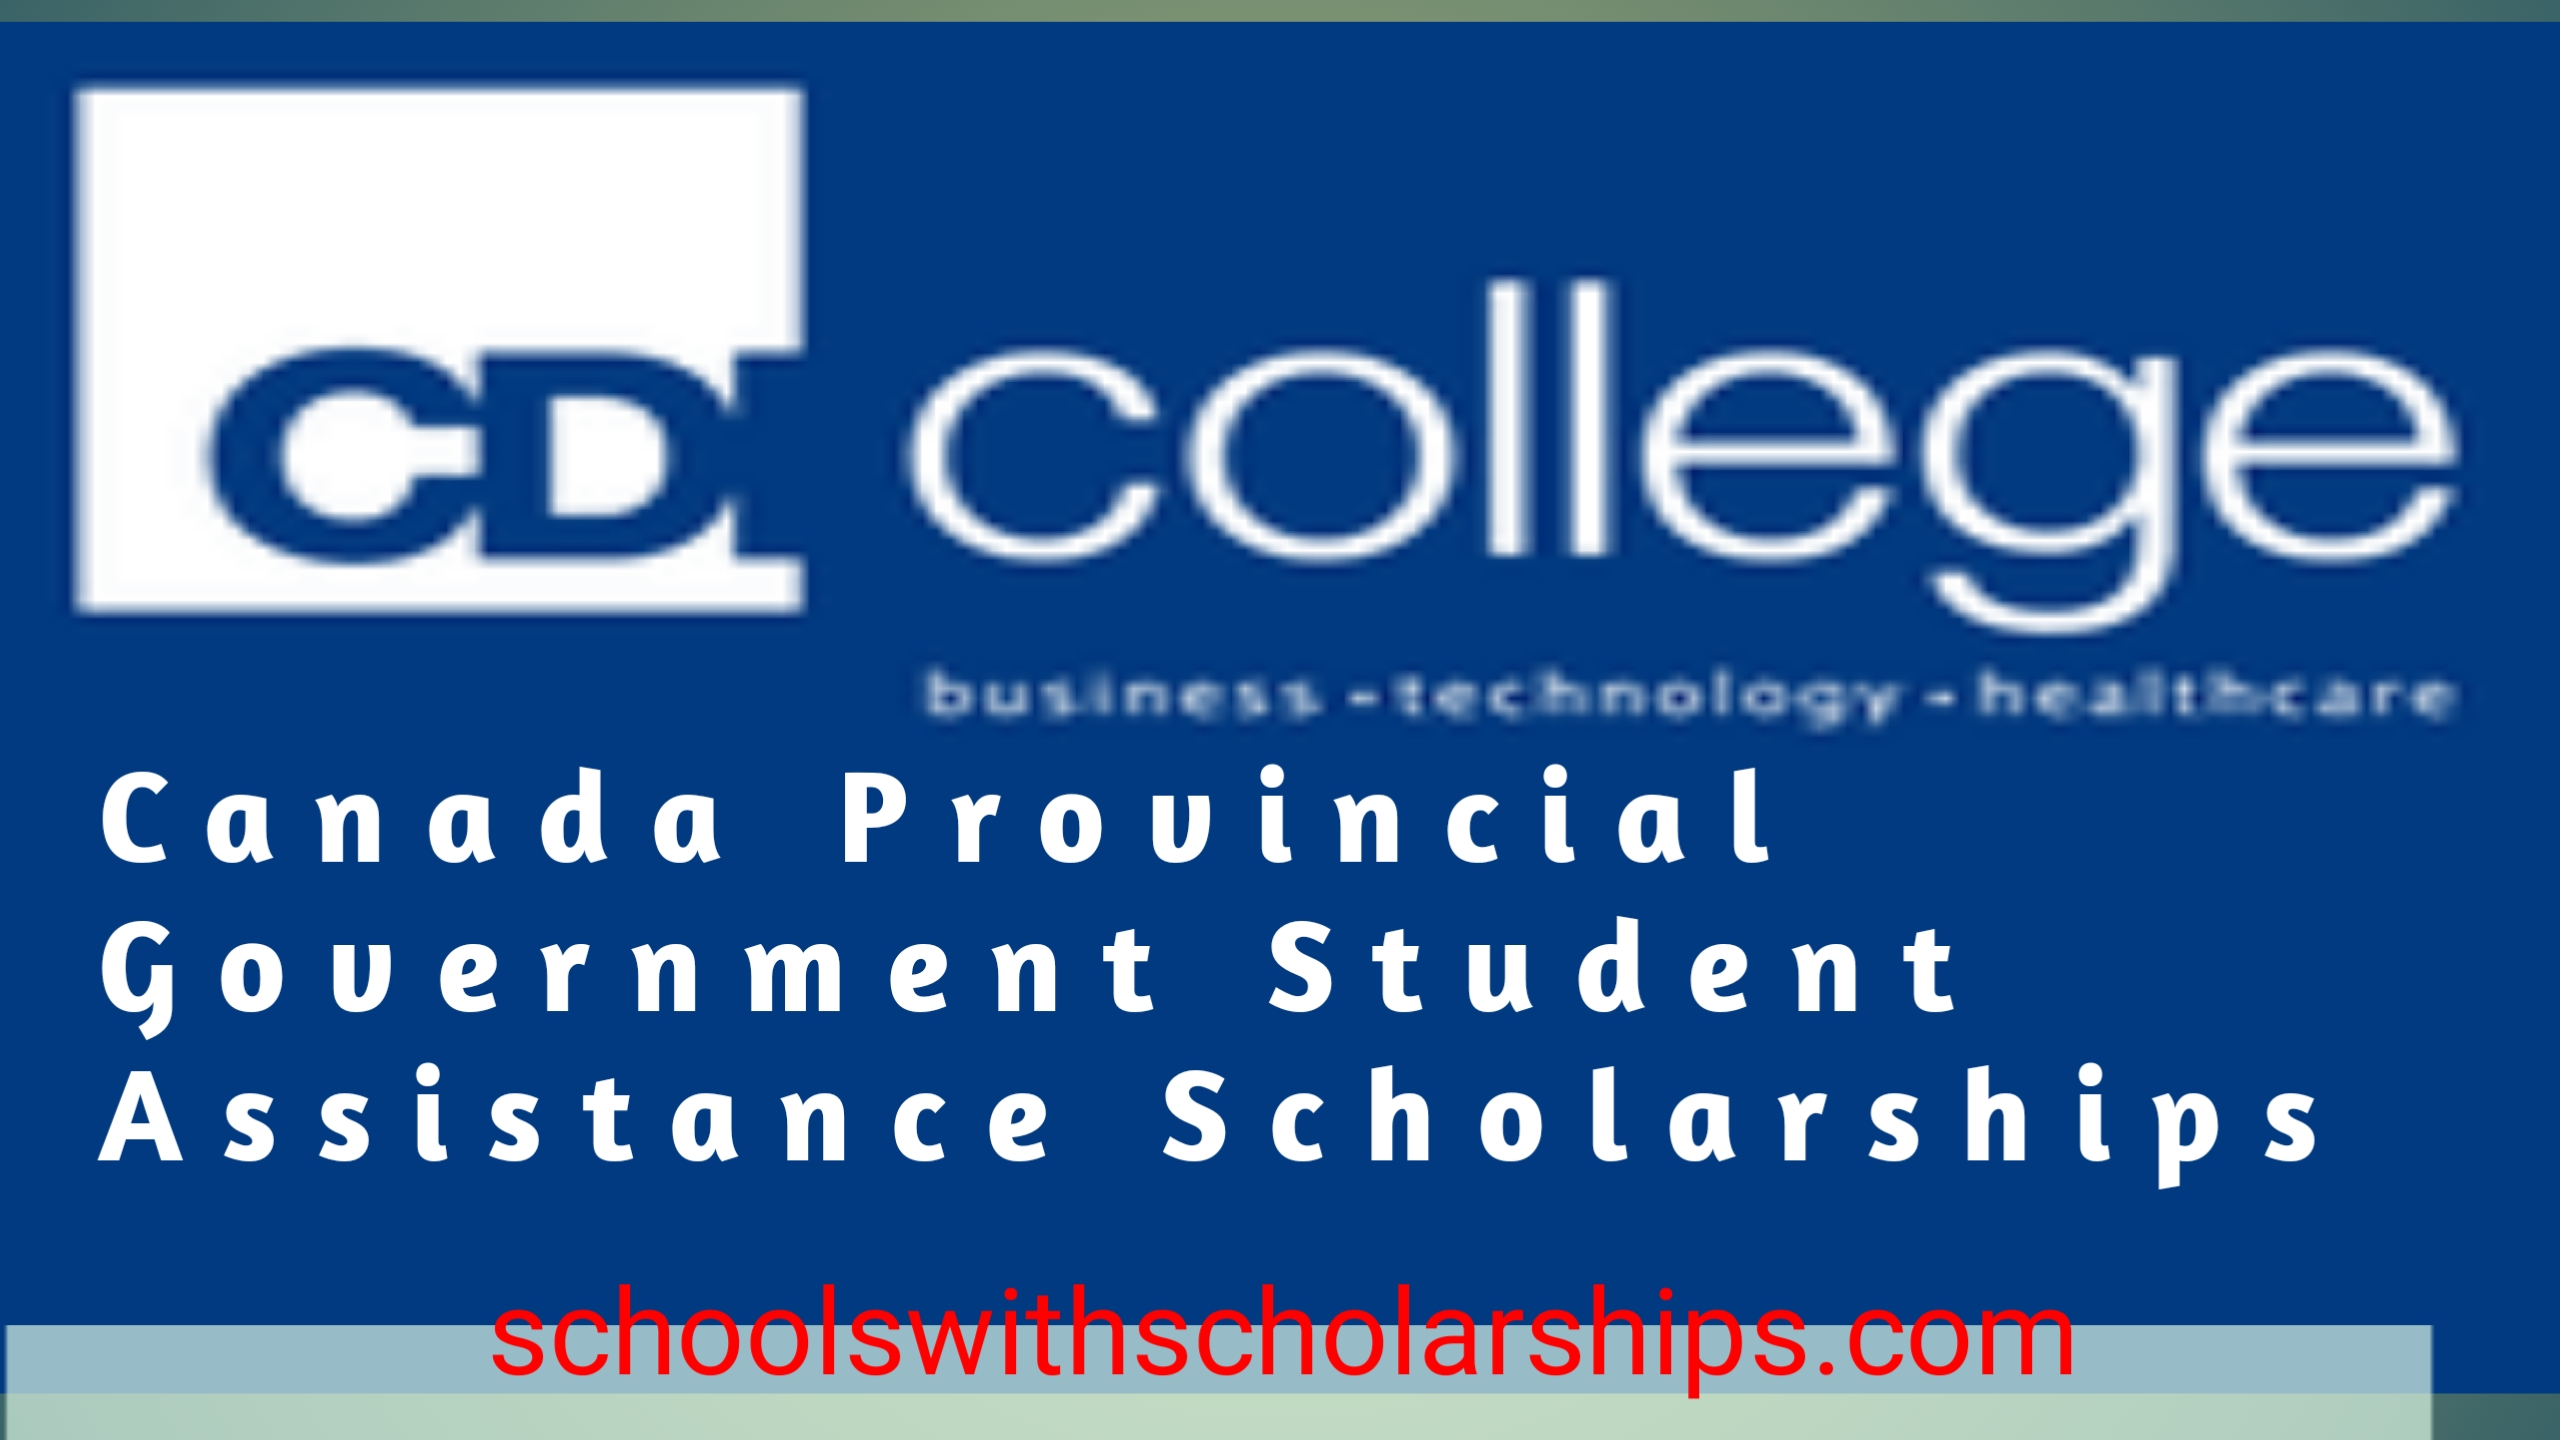 Canada Provincial Government Student Assistance Scholarships